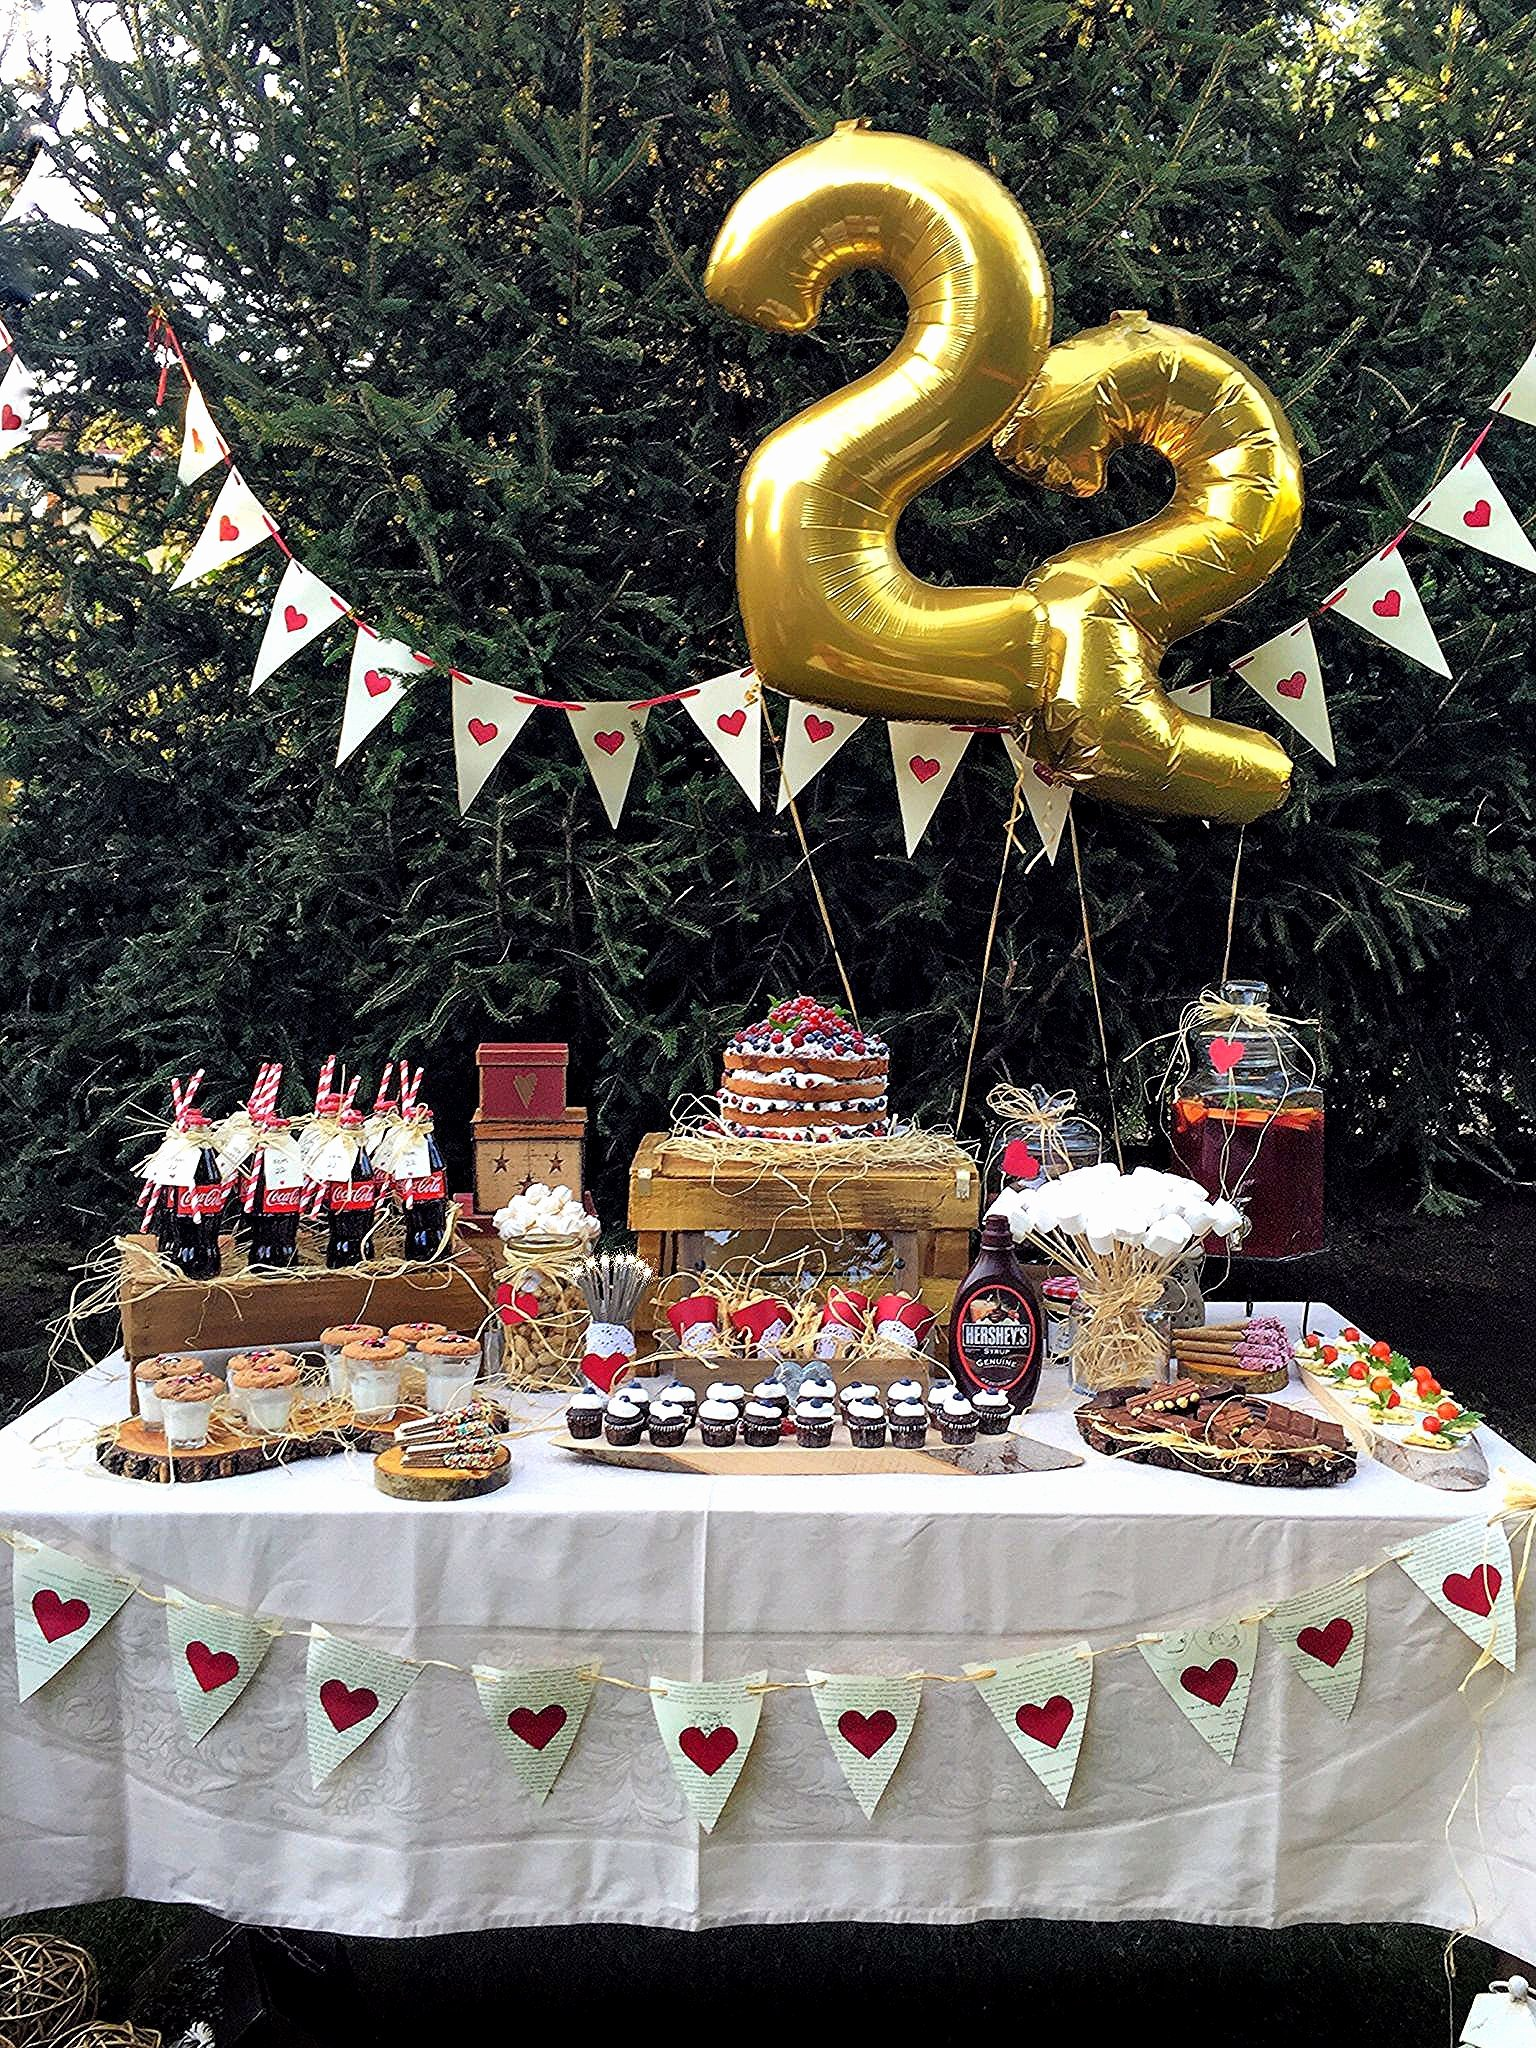 27th Birthday Decoration Ideas Inspirational 22nd Birthday Party Ideas for Her Fresh My 22nd Birthday